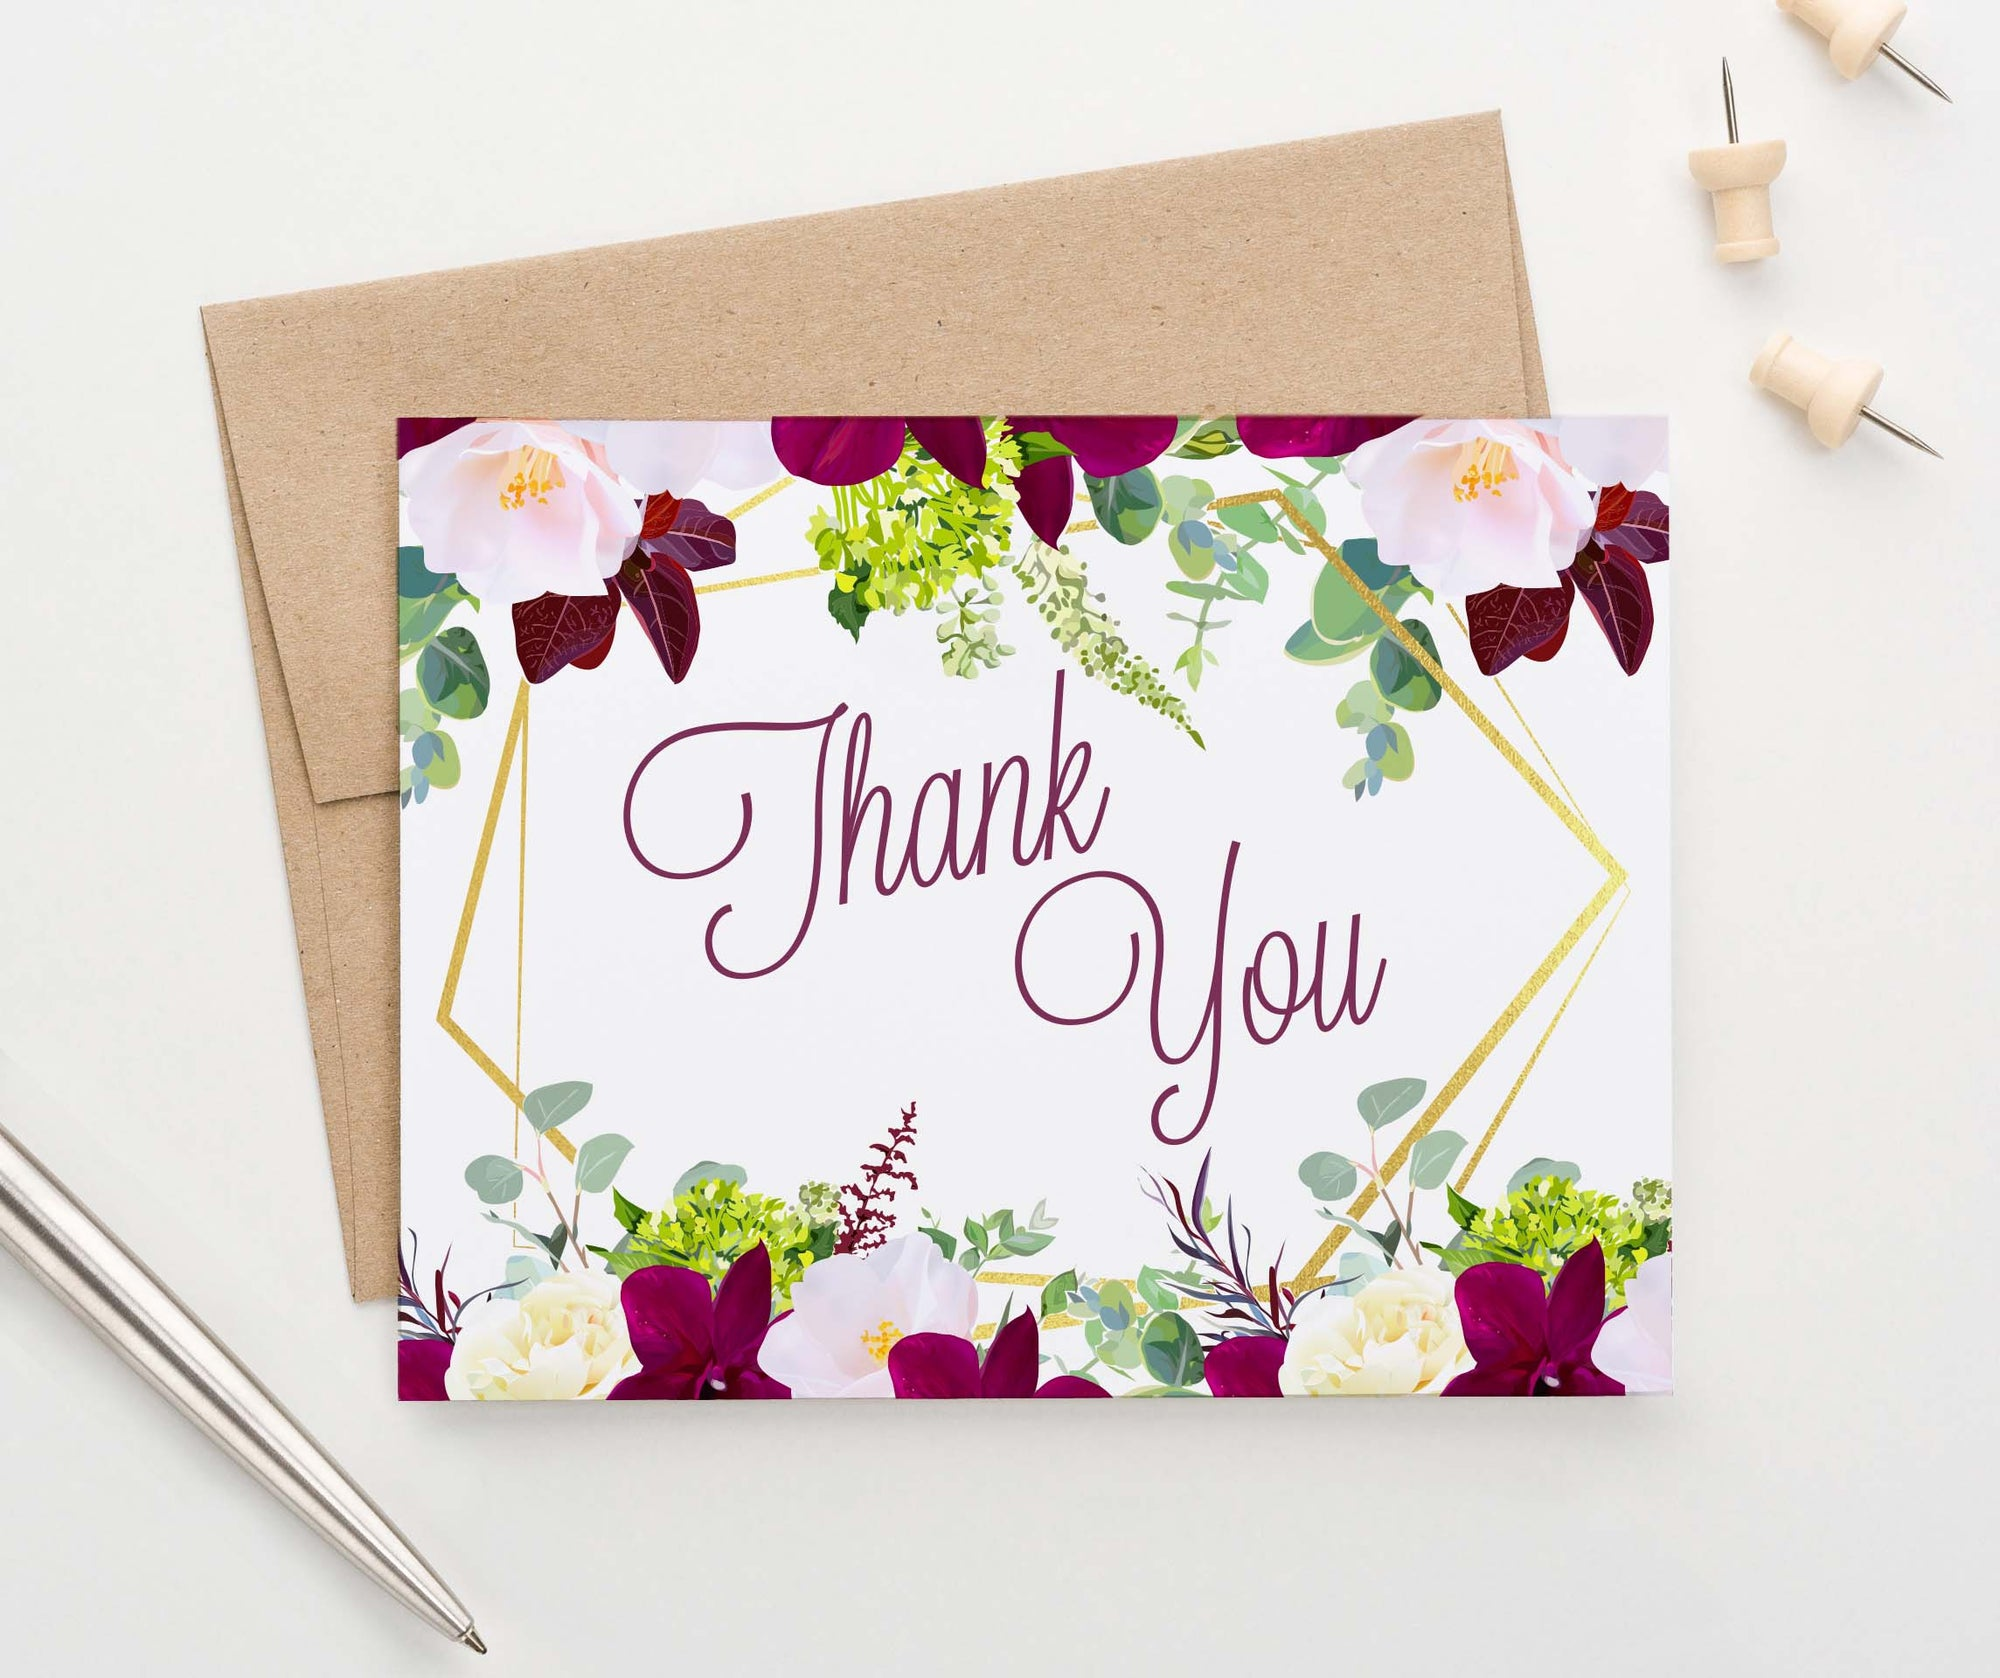 TY007 burgundy floral folded thank you notes for women gold wedding elegant